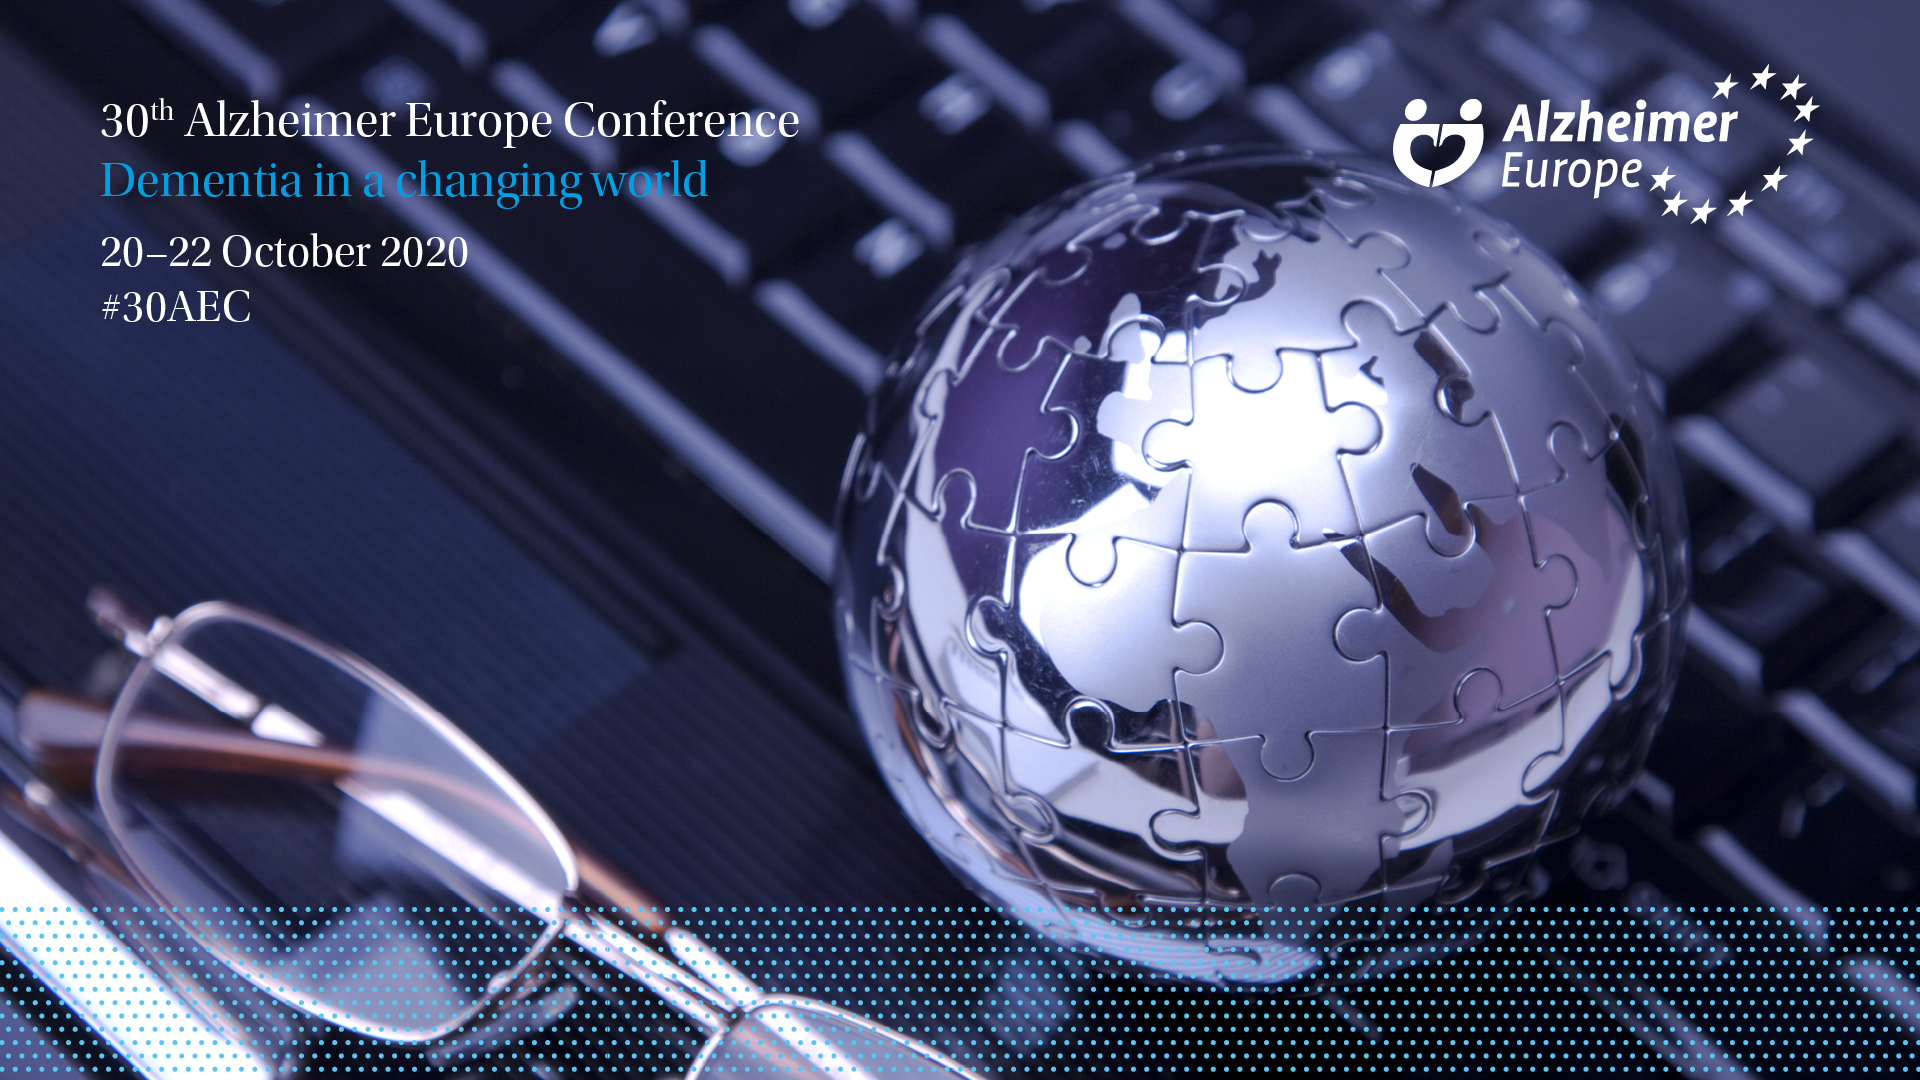 'Dementia in a changing world'. The 30th Alzheimer Europe Conference goes virtual: throwback to three days of inspiration, motivation and ambition